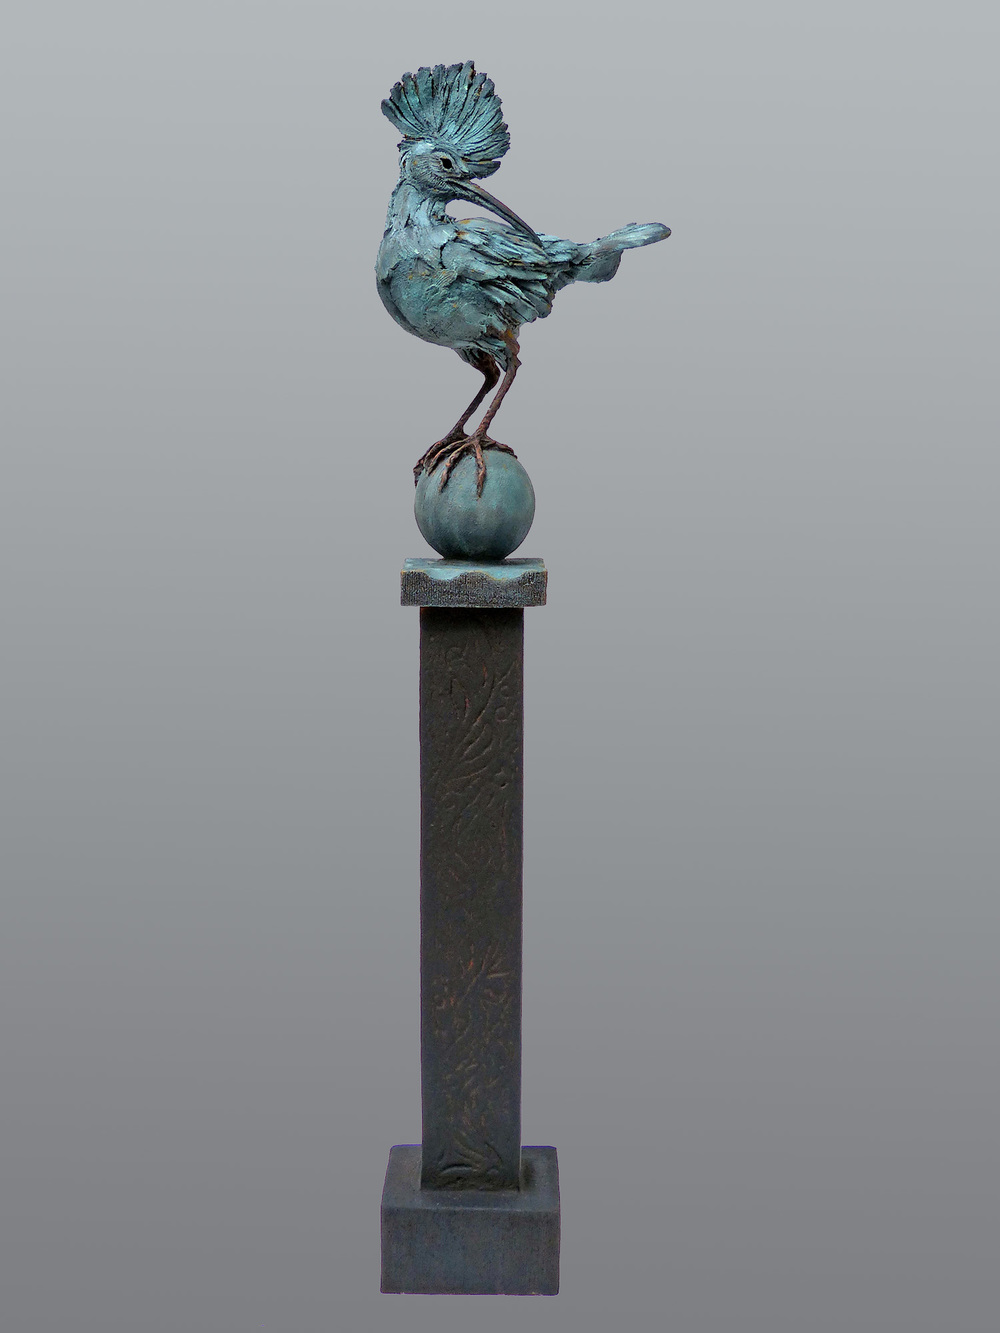 Hoopoe-on-Pole   ©  100 cm high x 26 cm wide  Unique